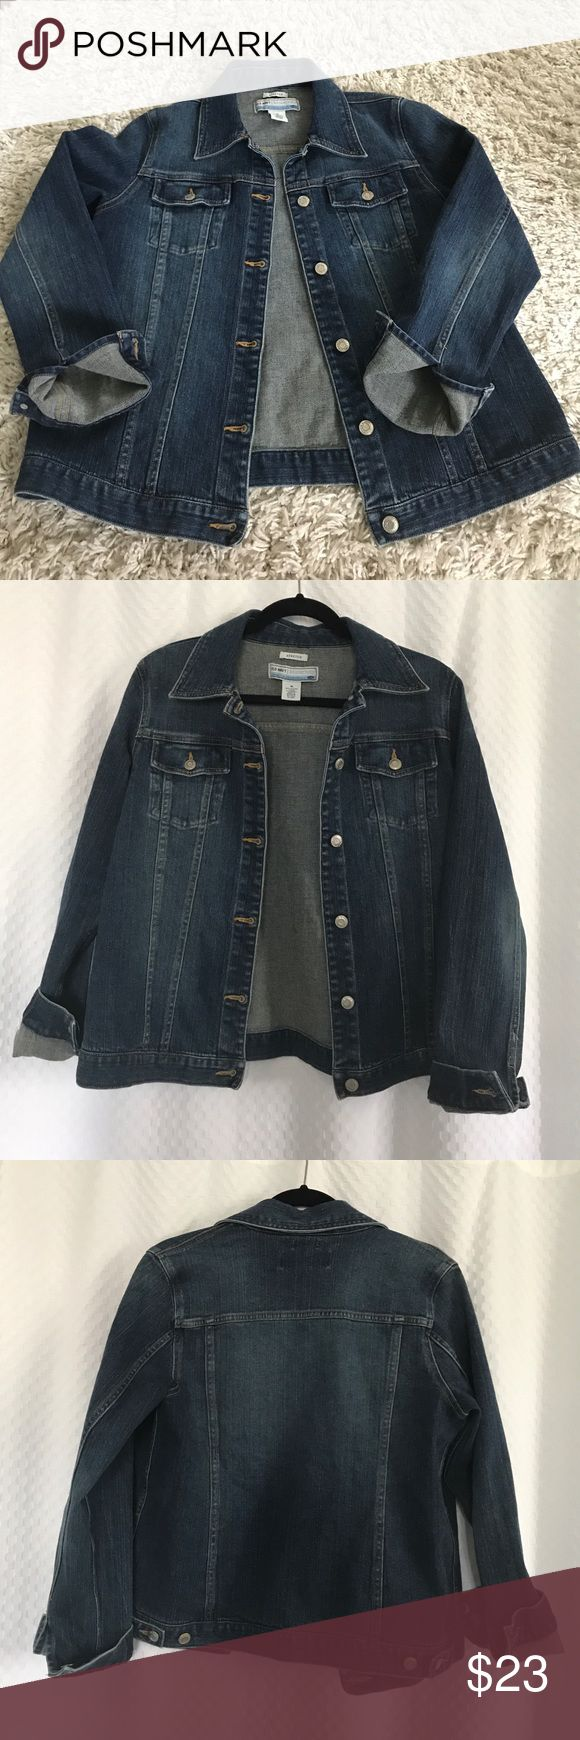 Old Navy Maternity Jean Jacket Pristine! Like New!! Old Navy Maternity Denim Jacket. Five buttons, medium blue wash. Sleeves are cuffed in the photos but they are full length with a button closure. Size Medium. From a smoke free home! Old Navy Jackets & Coats Jean Jackets